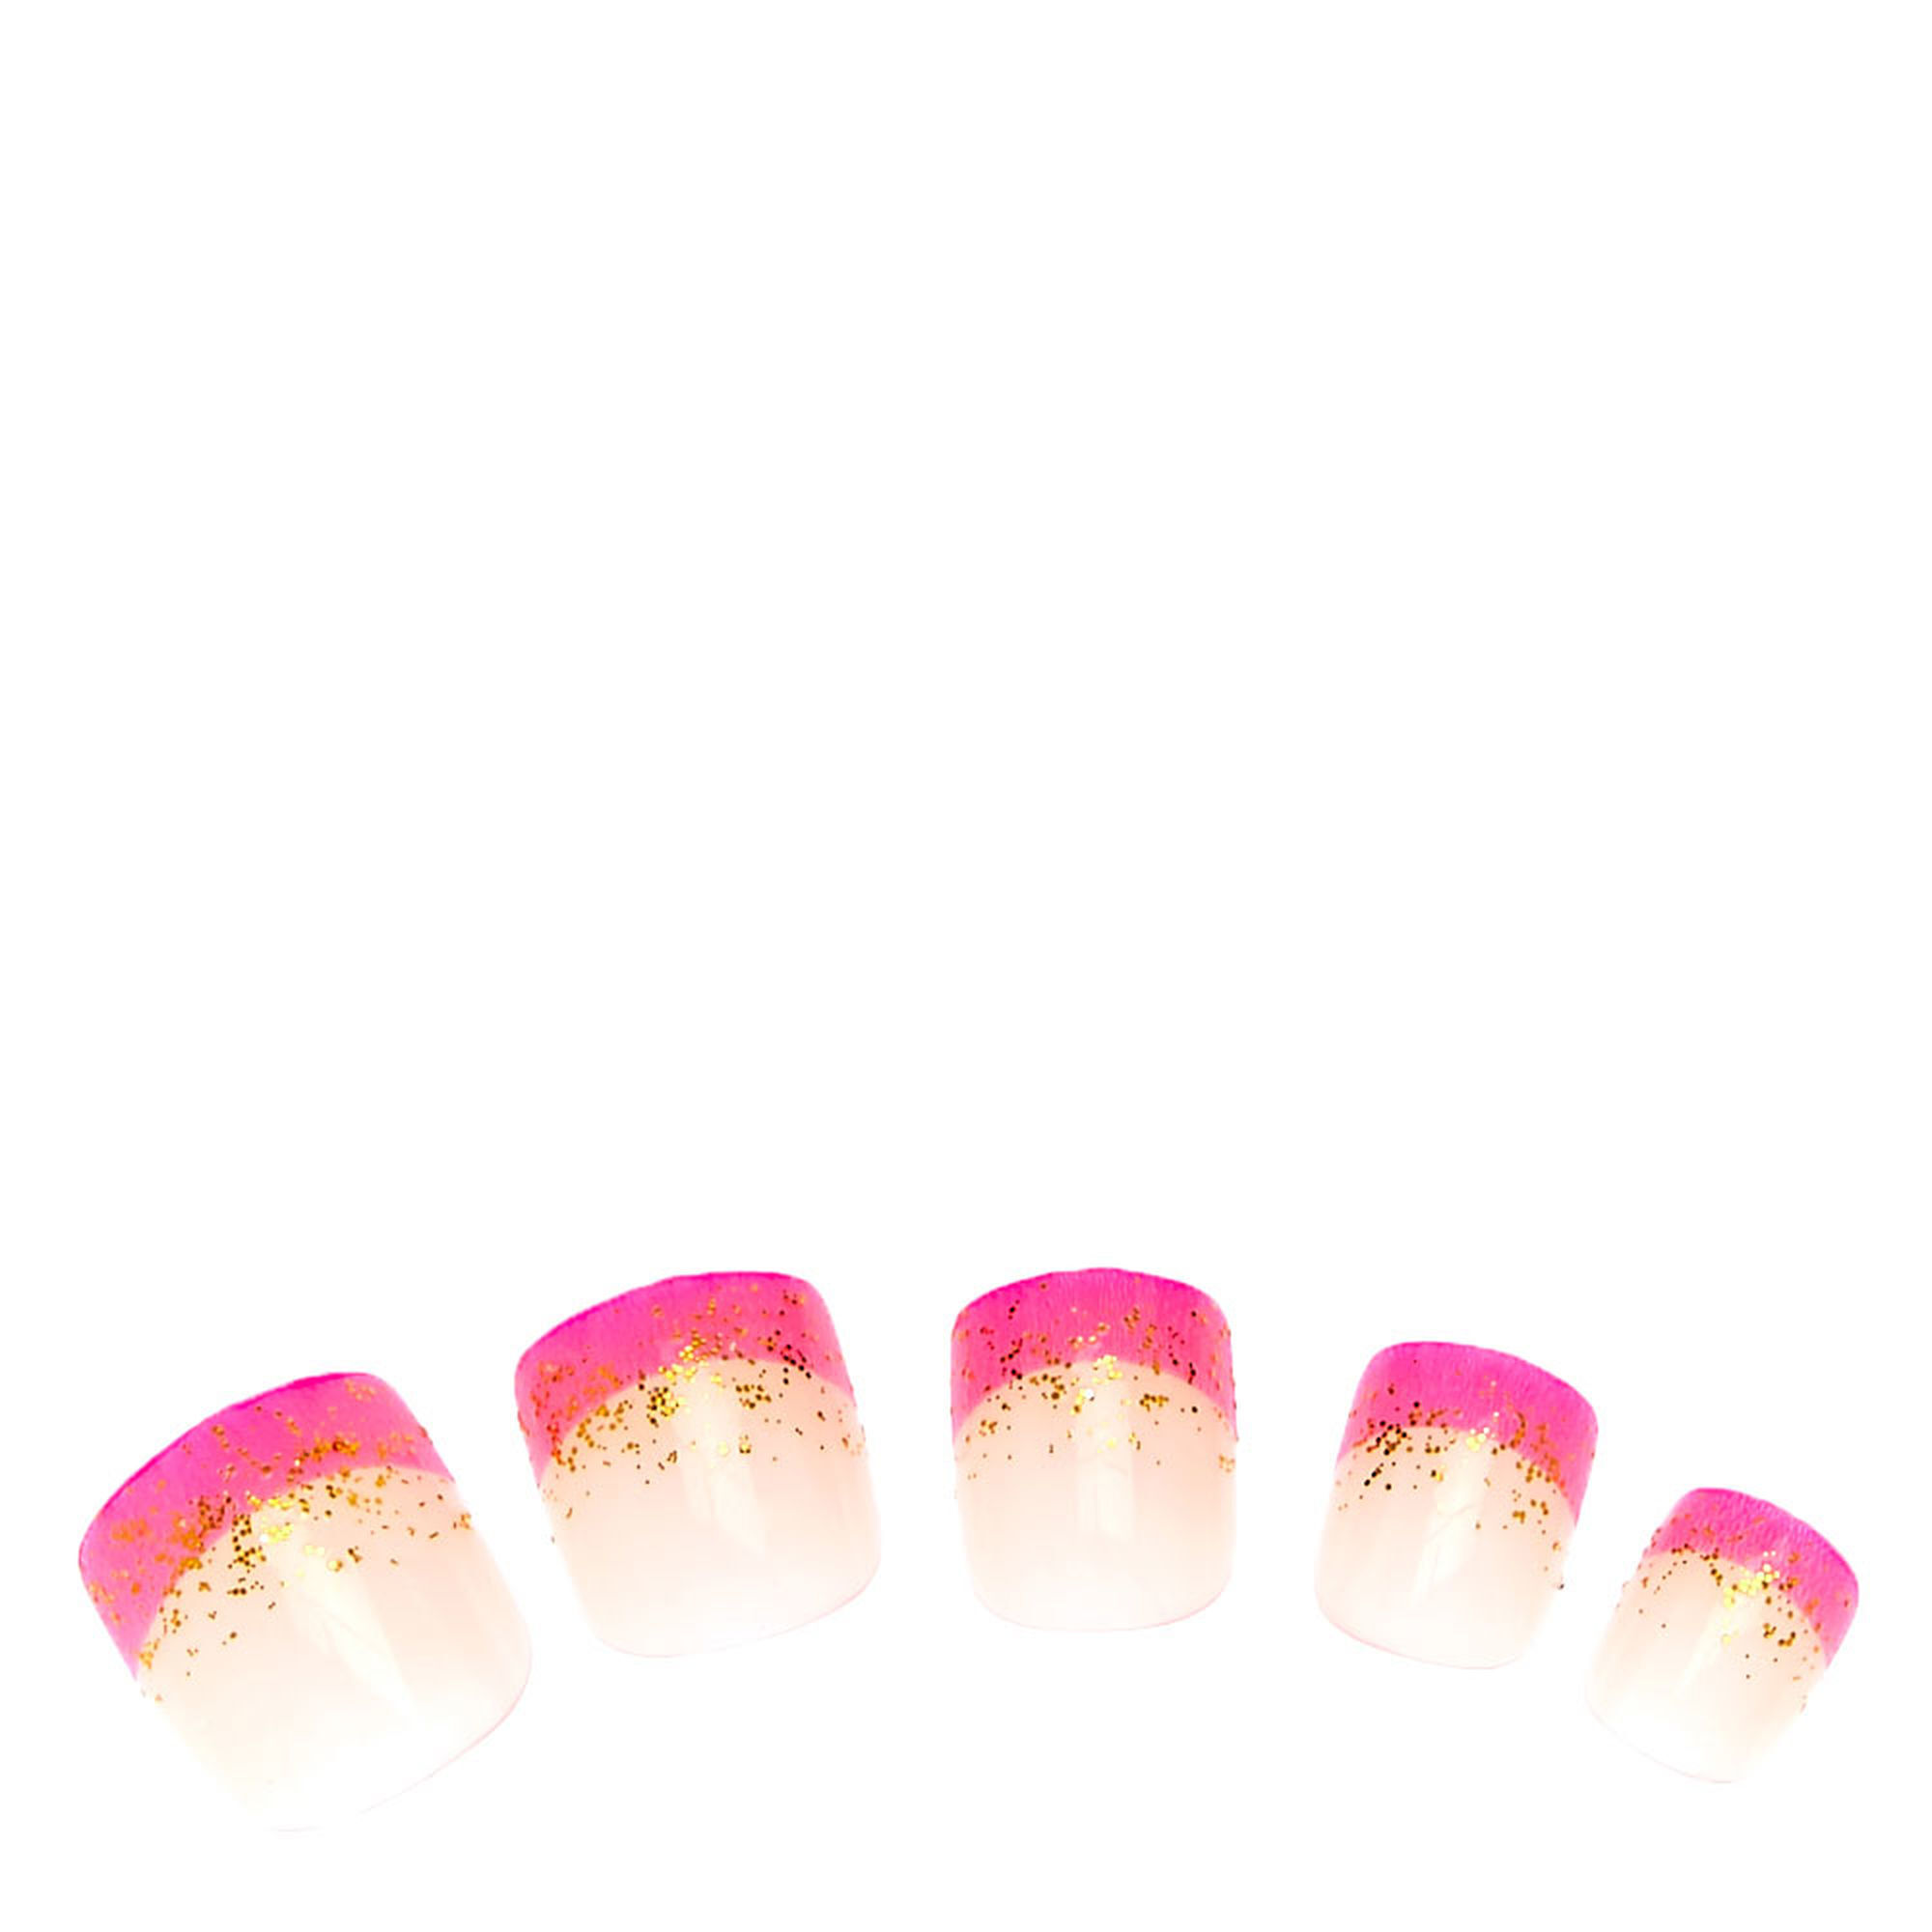 Popular fashion nails uxbridge - Gold Glitter Pink French Tip Press On Faux Nails